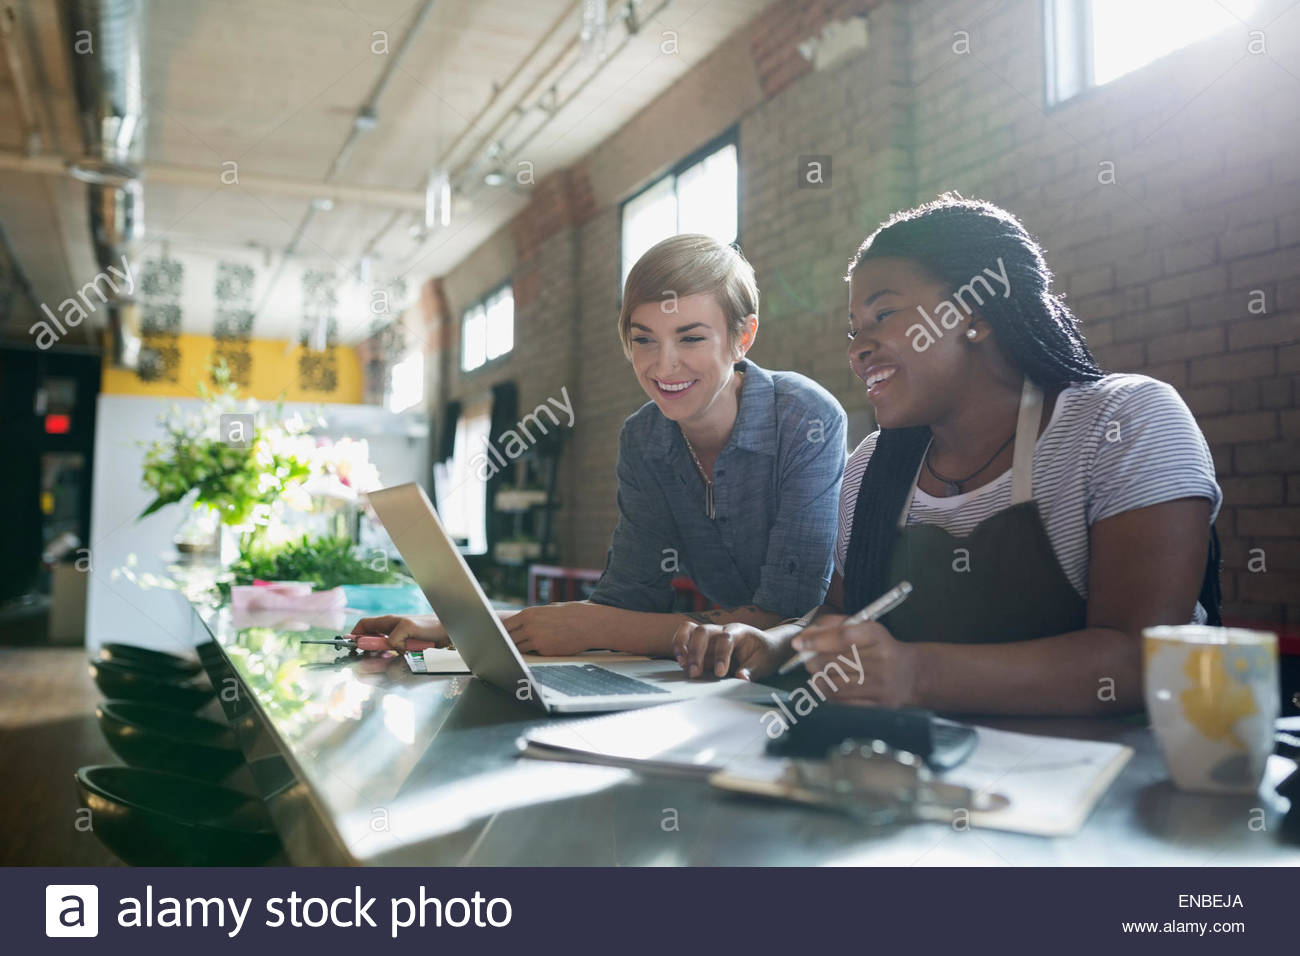 Florists working at laptop in sunny flower shop - Stock Image